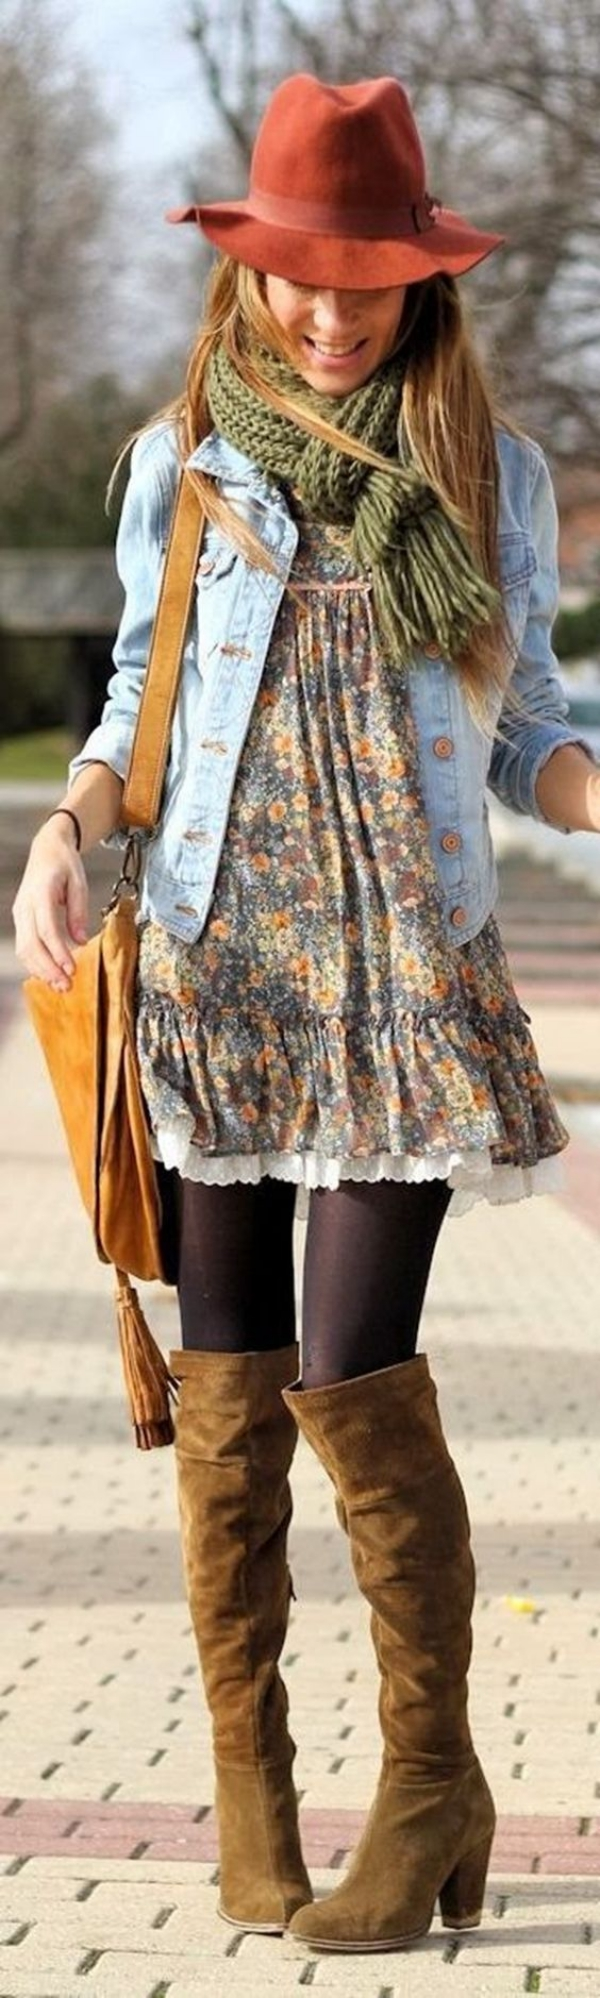 Autumn-Fashion-Outfits-Ideas-32